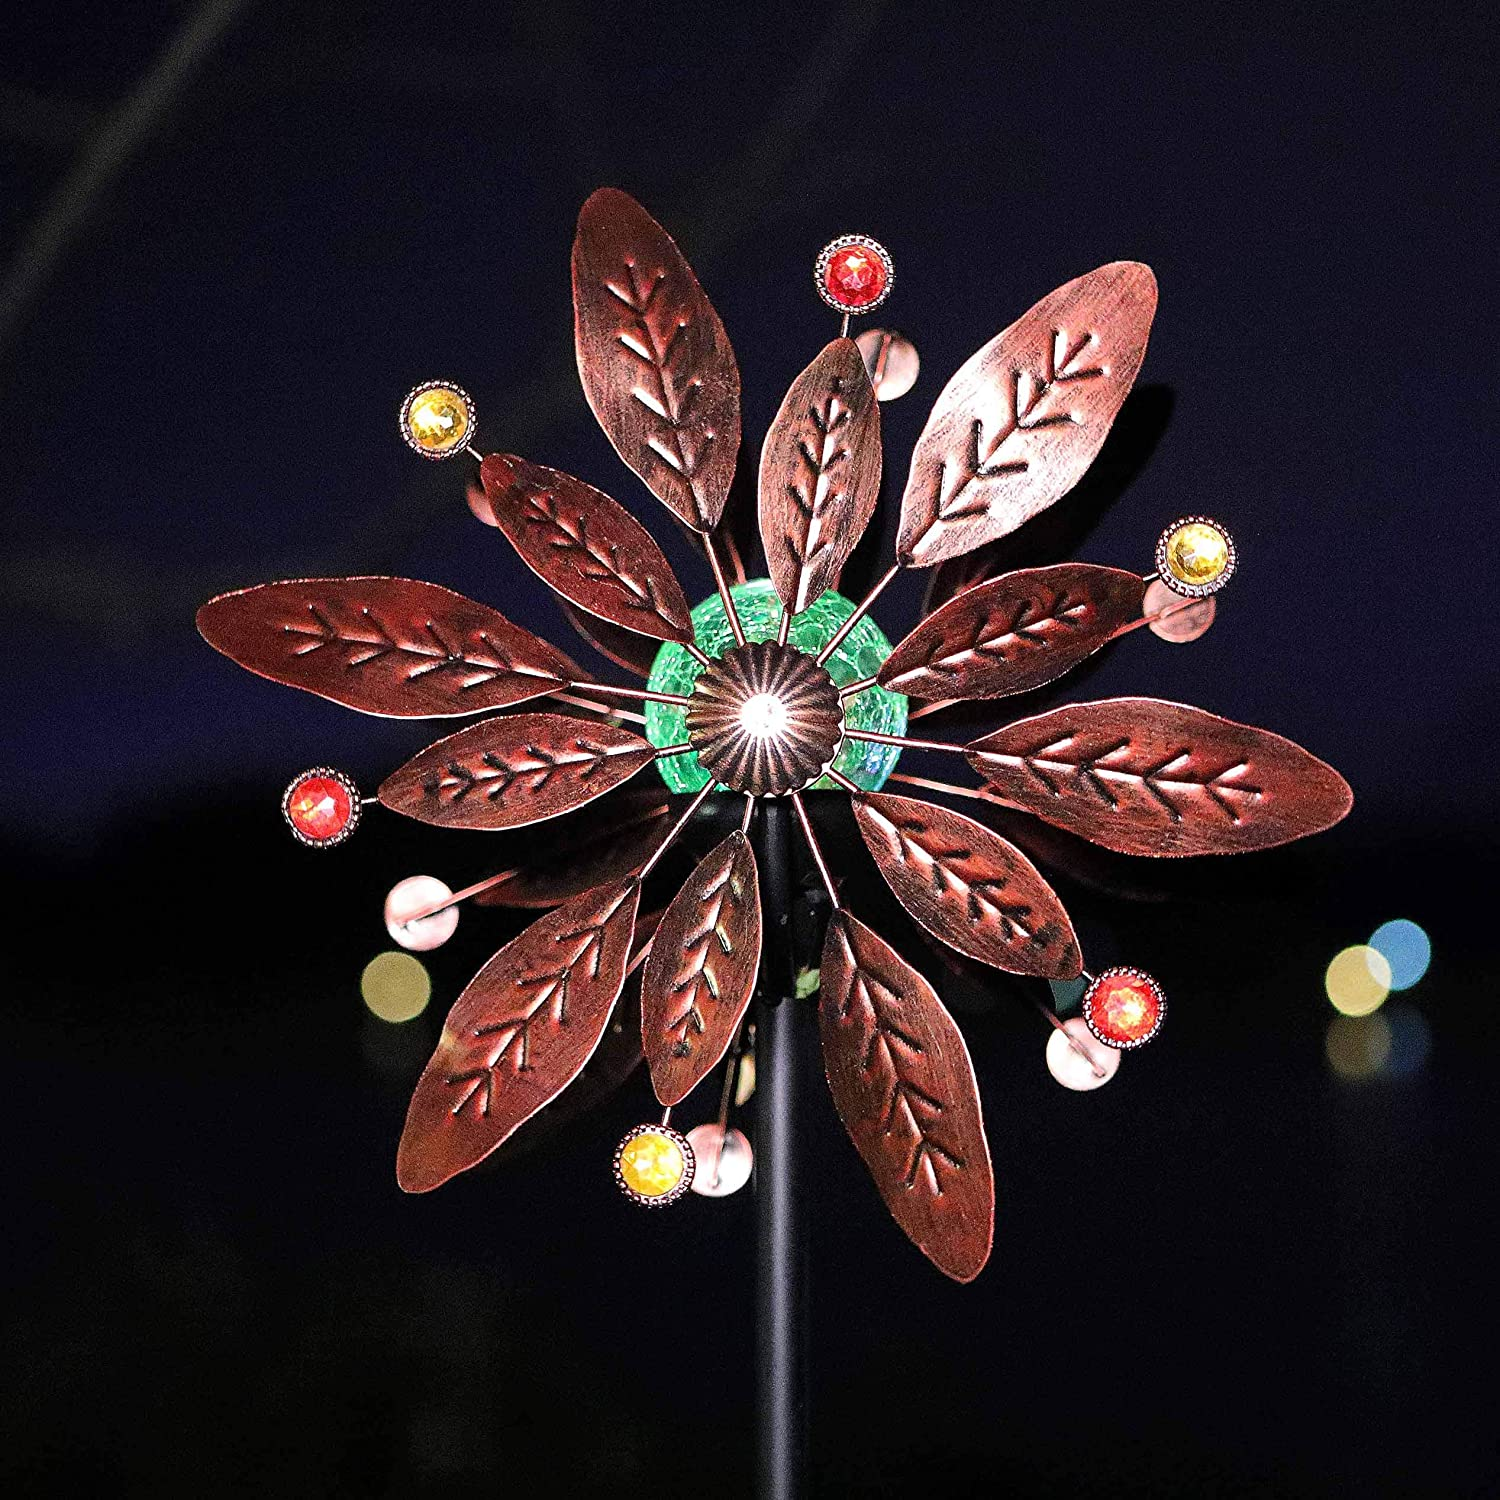 Joyathome 75in Antique Copper Metal Finish Solar Wind Spinner Tree Leaves Color Changing LED Lighting Solar Powered Glass Ball with Kinetic Dual Direction for Outdoor Garden Yard Lawn